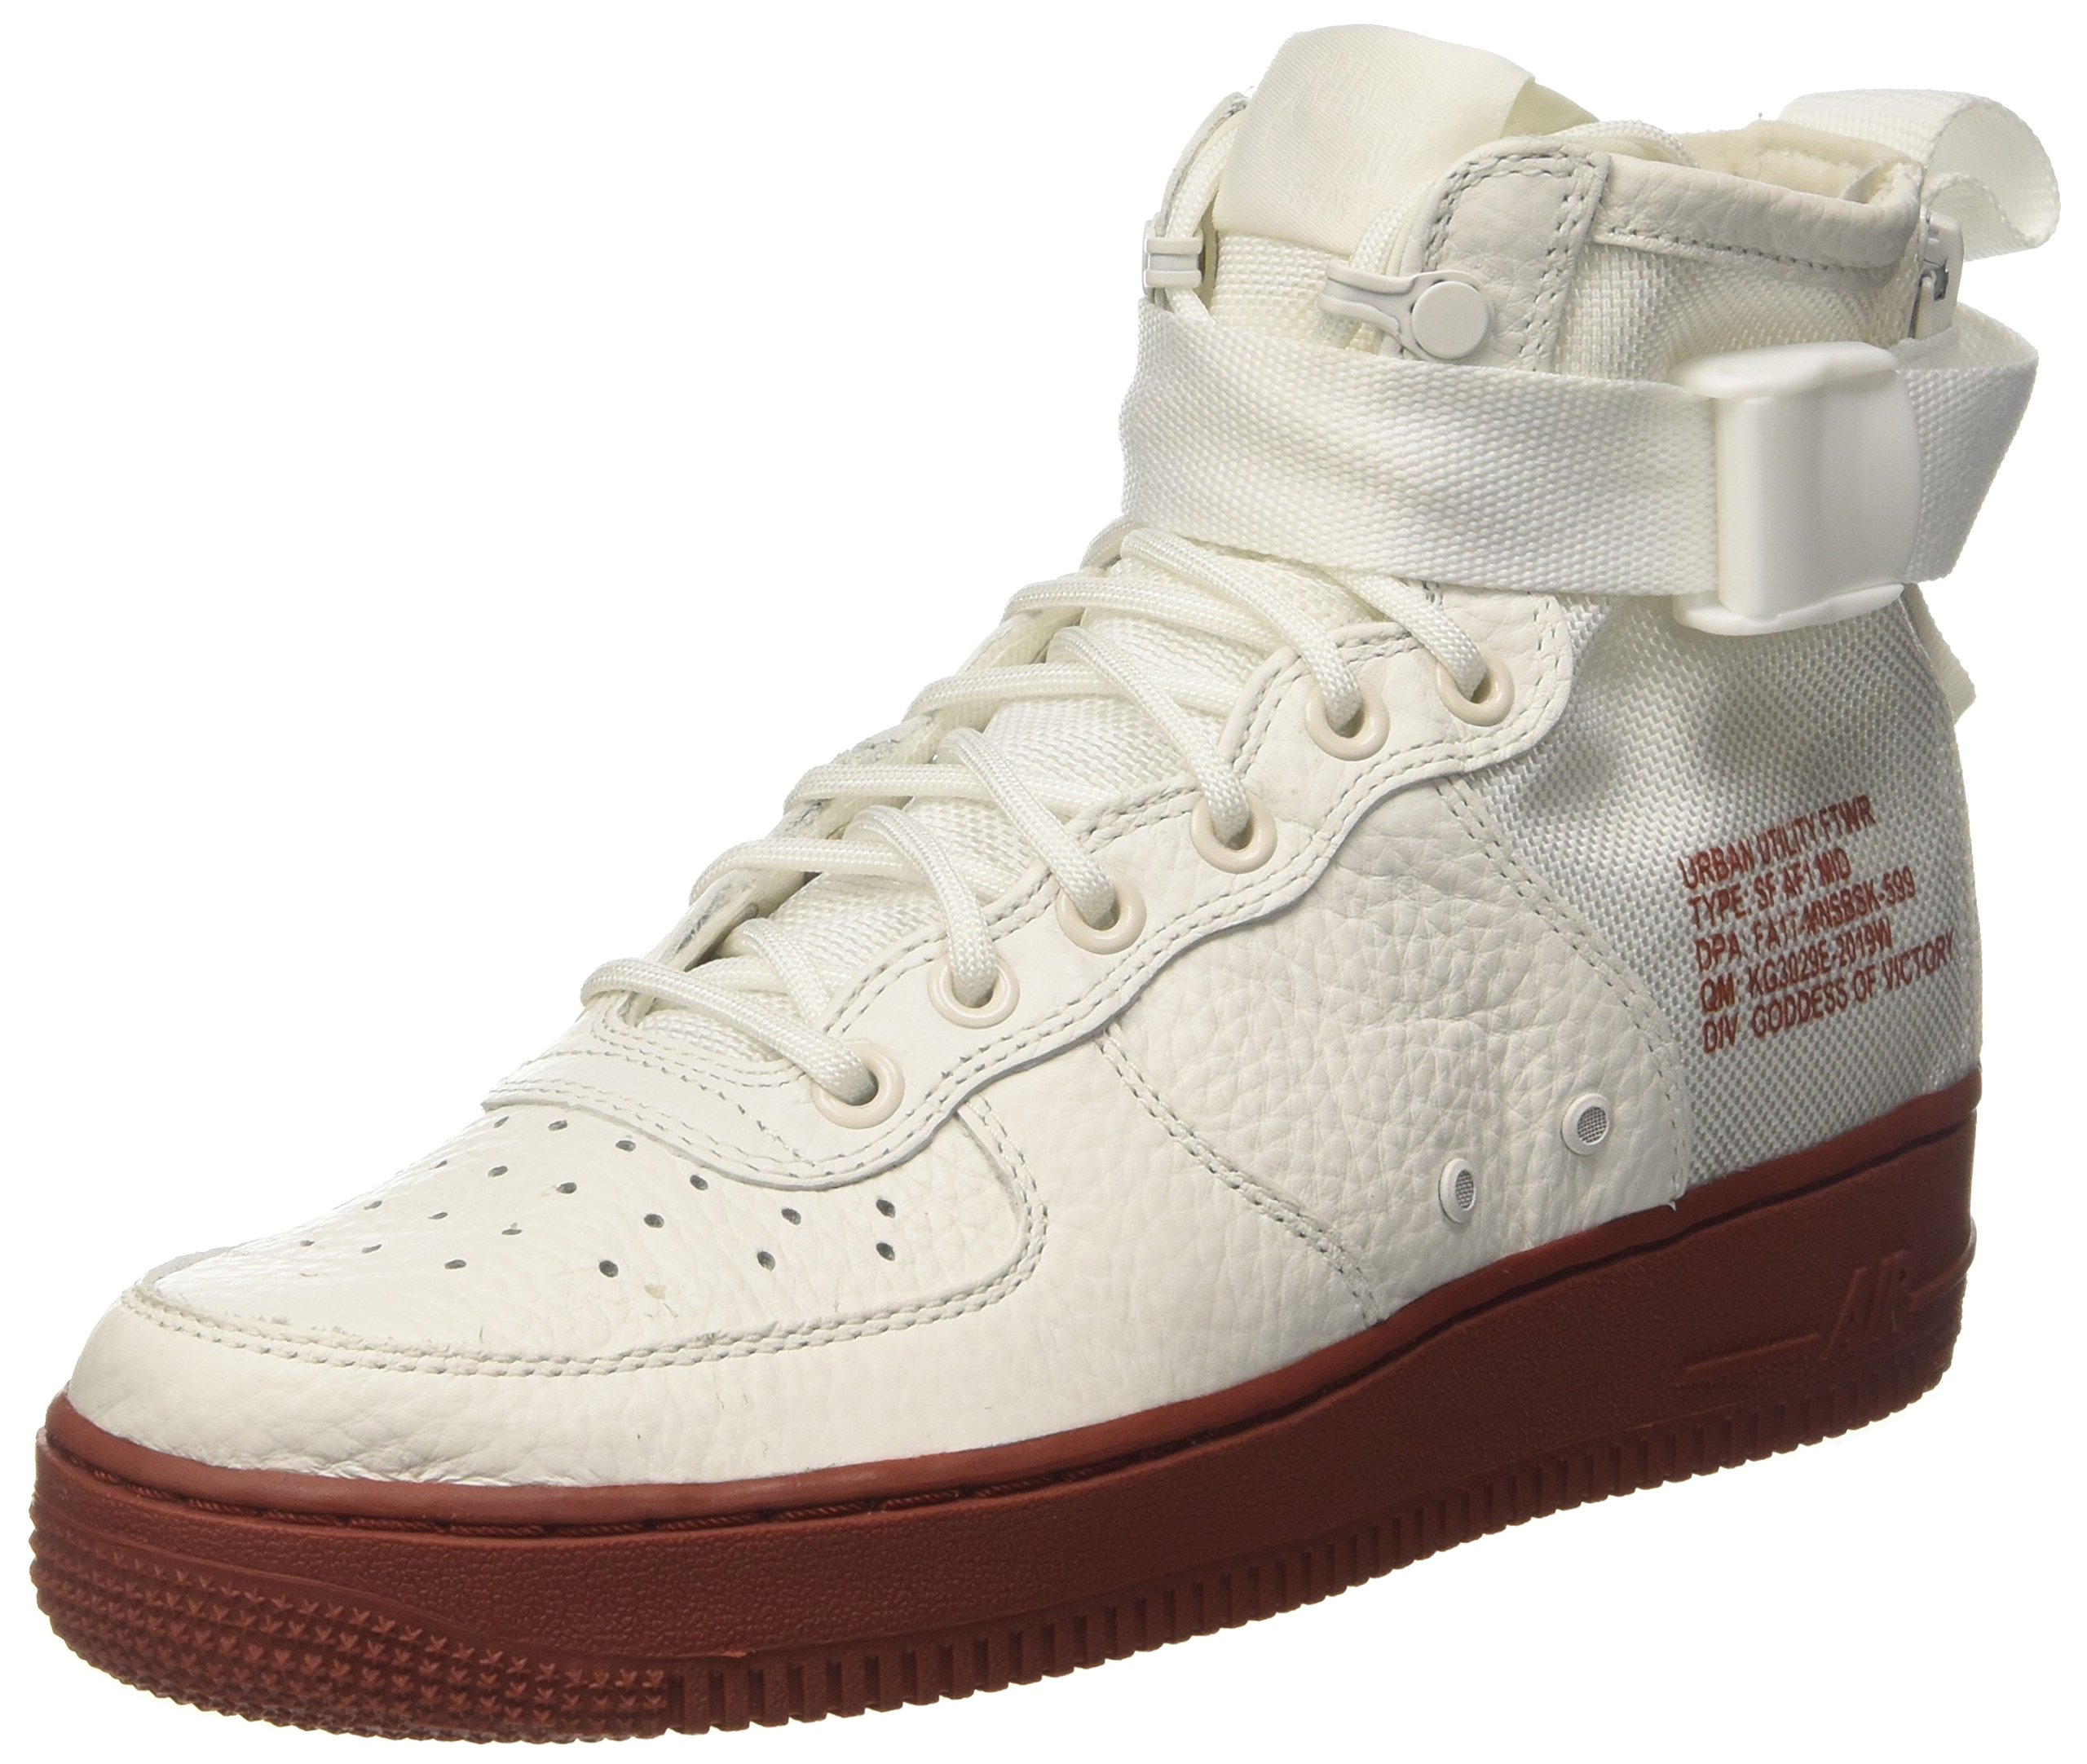 b64fb022d6a98 Galleon - Nike SF Air Force 1 MID Mens Shoes Ivory Ivory Mars Stone  917753-100 (11 D(M) US)